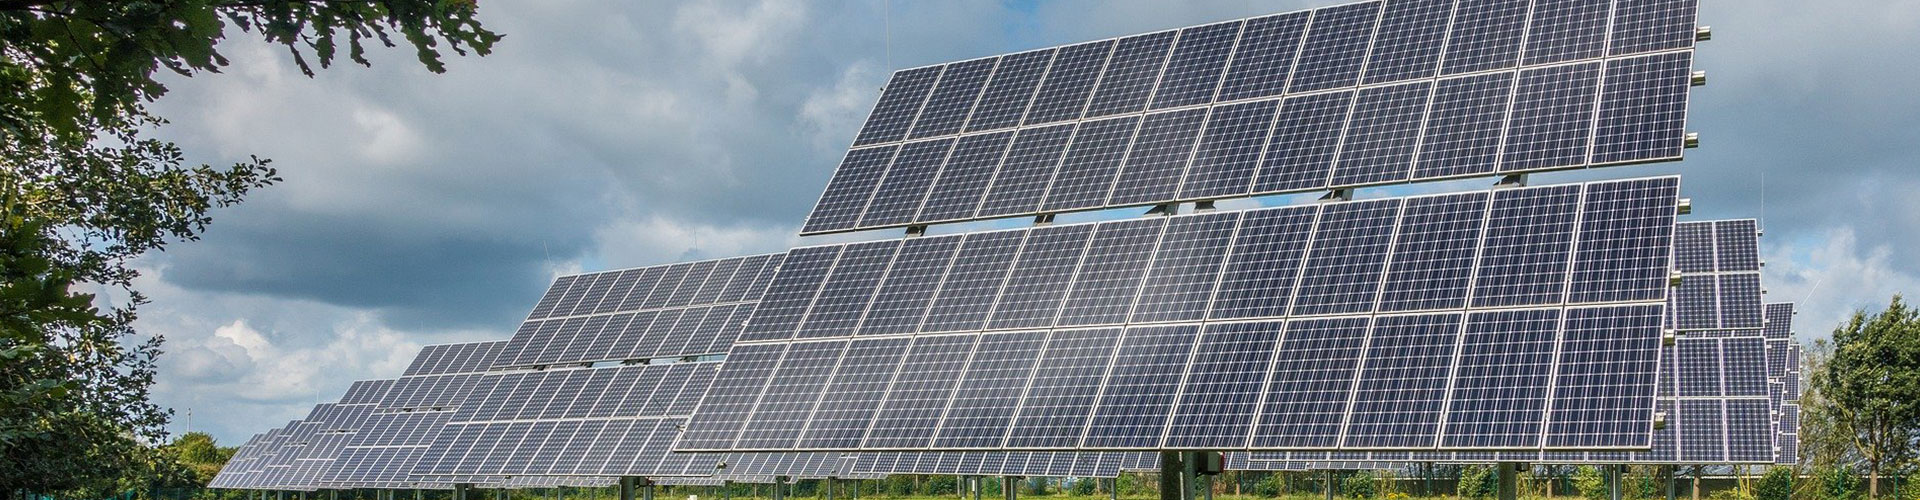 Big Commercial Solar Panels In Field